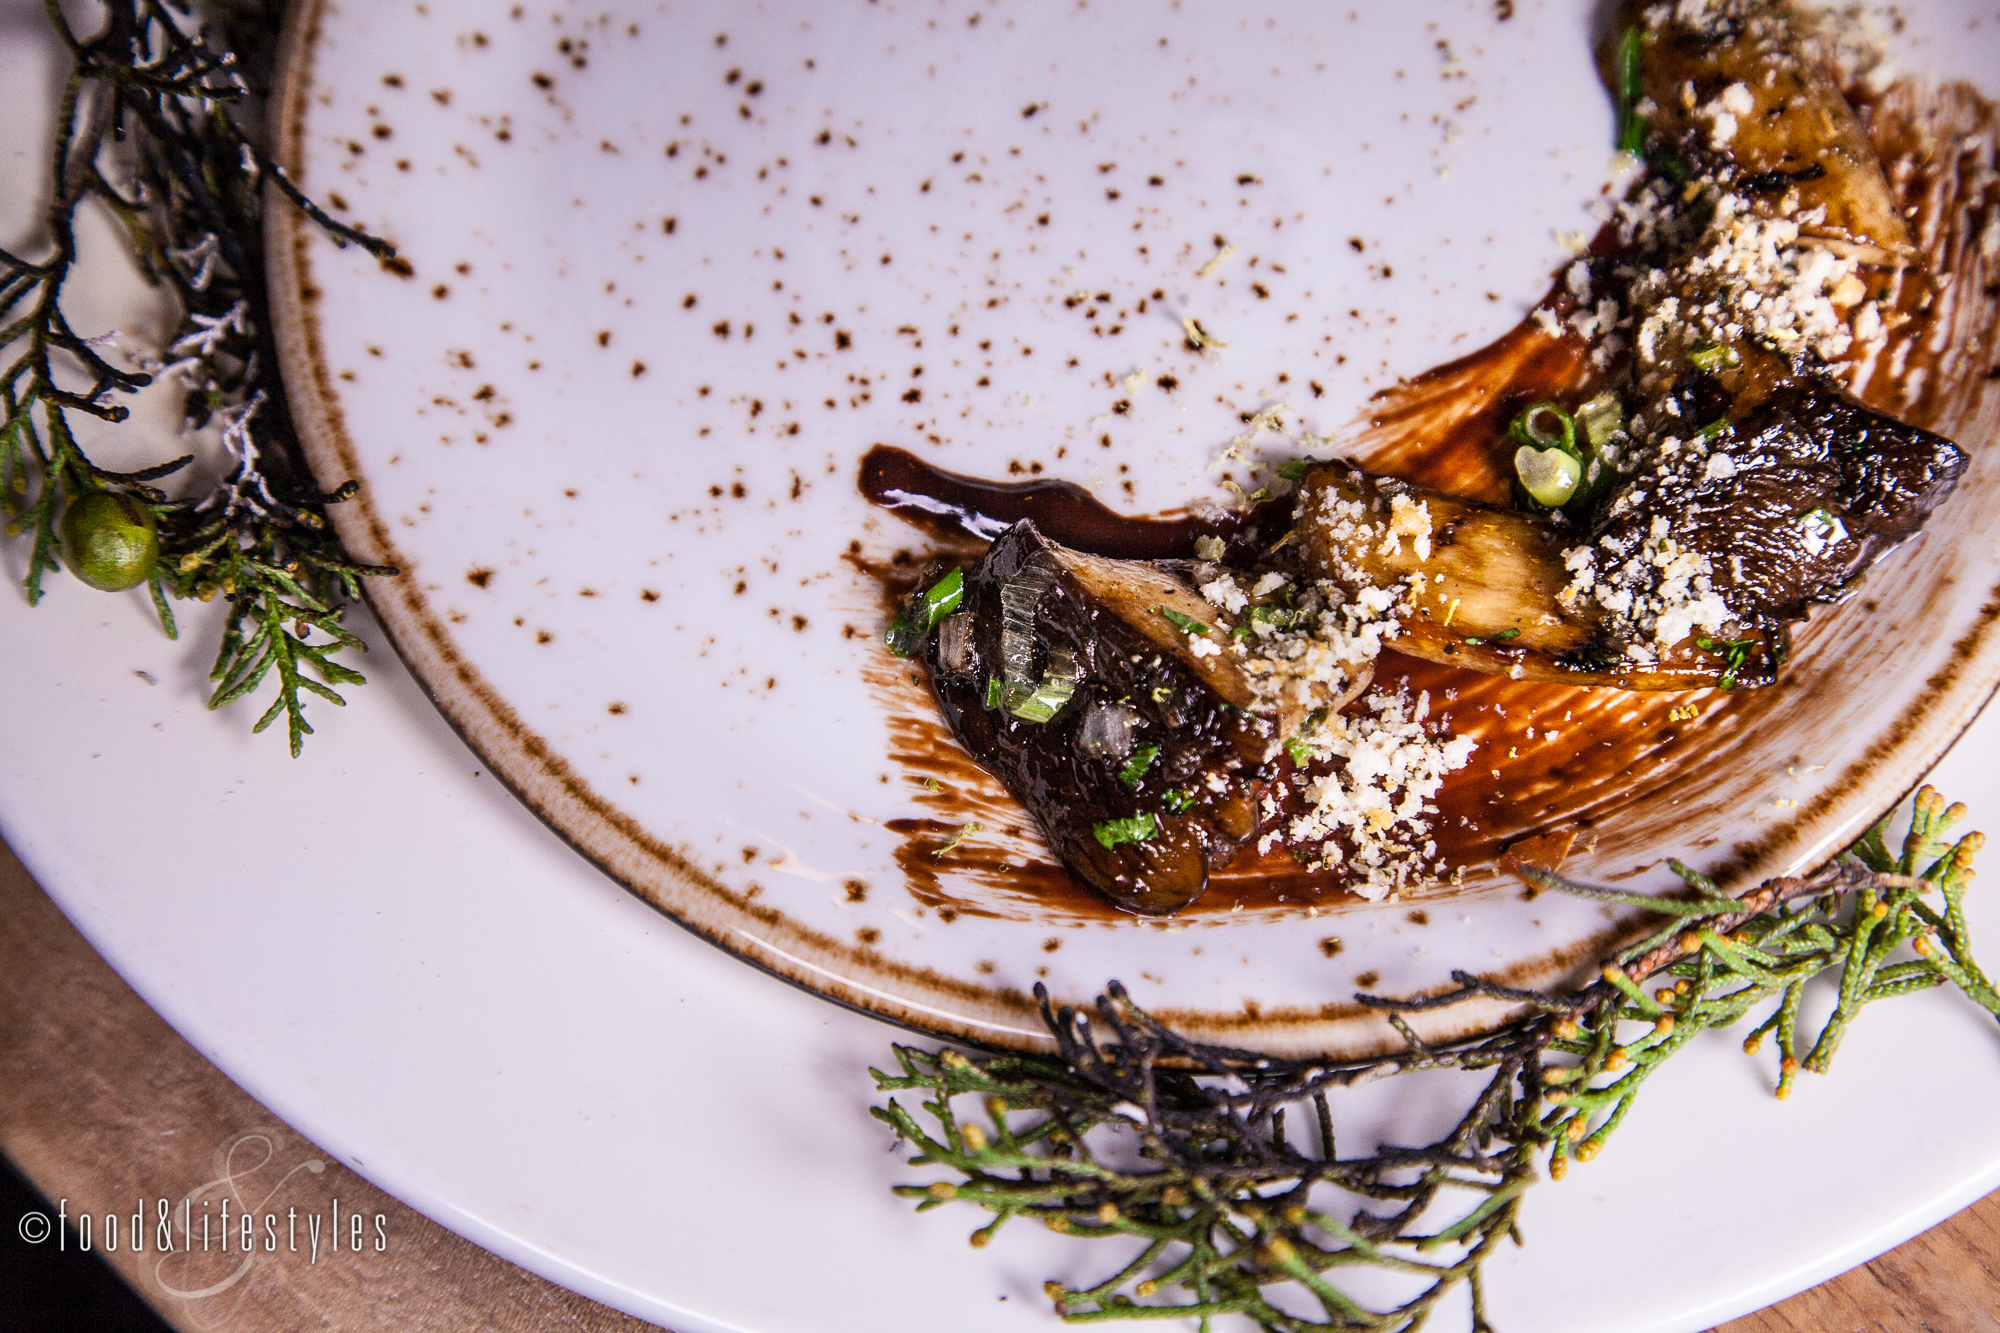 Wild mushrooms with smoked pine needles, pine nut gremolata, and Mexican chocolate